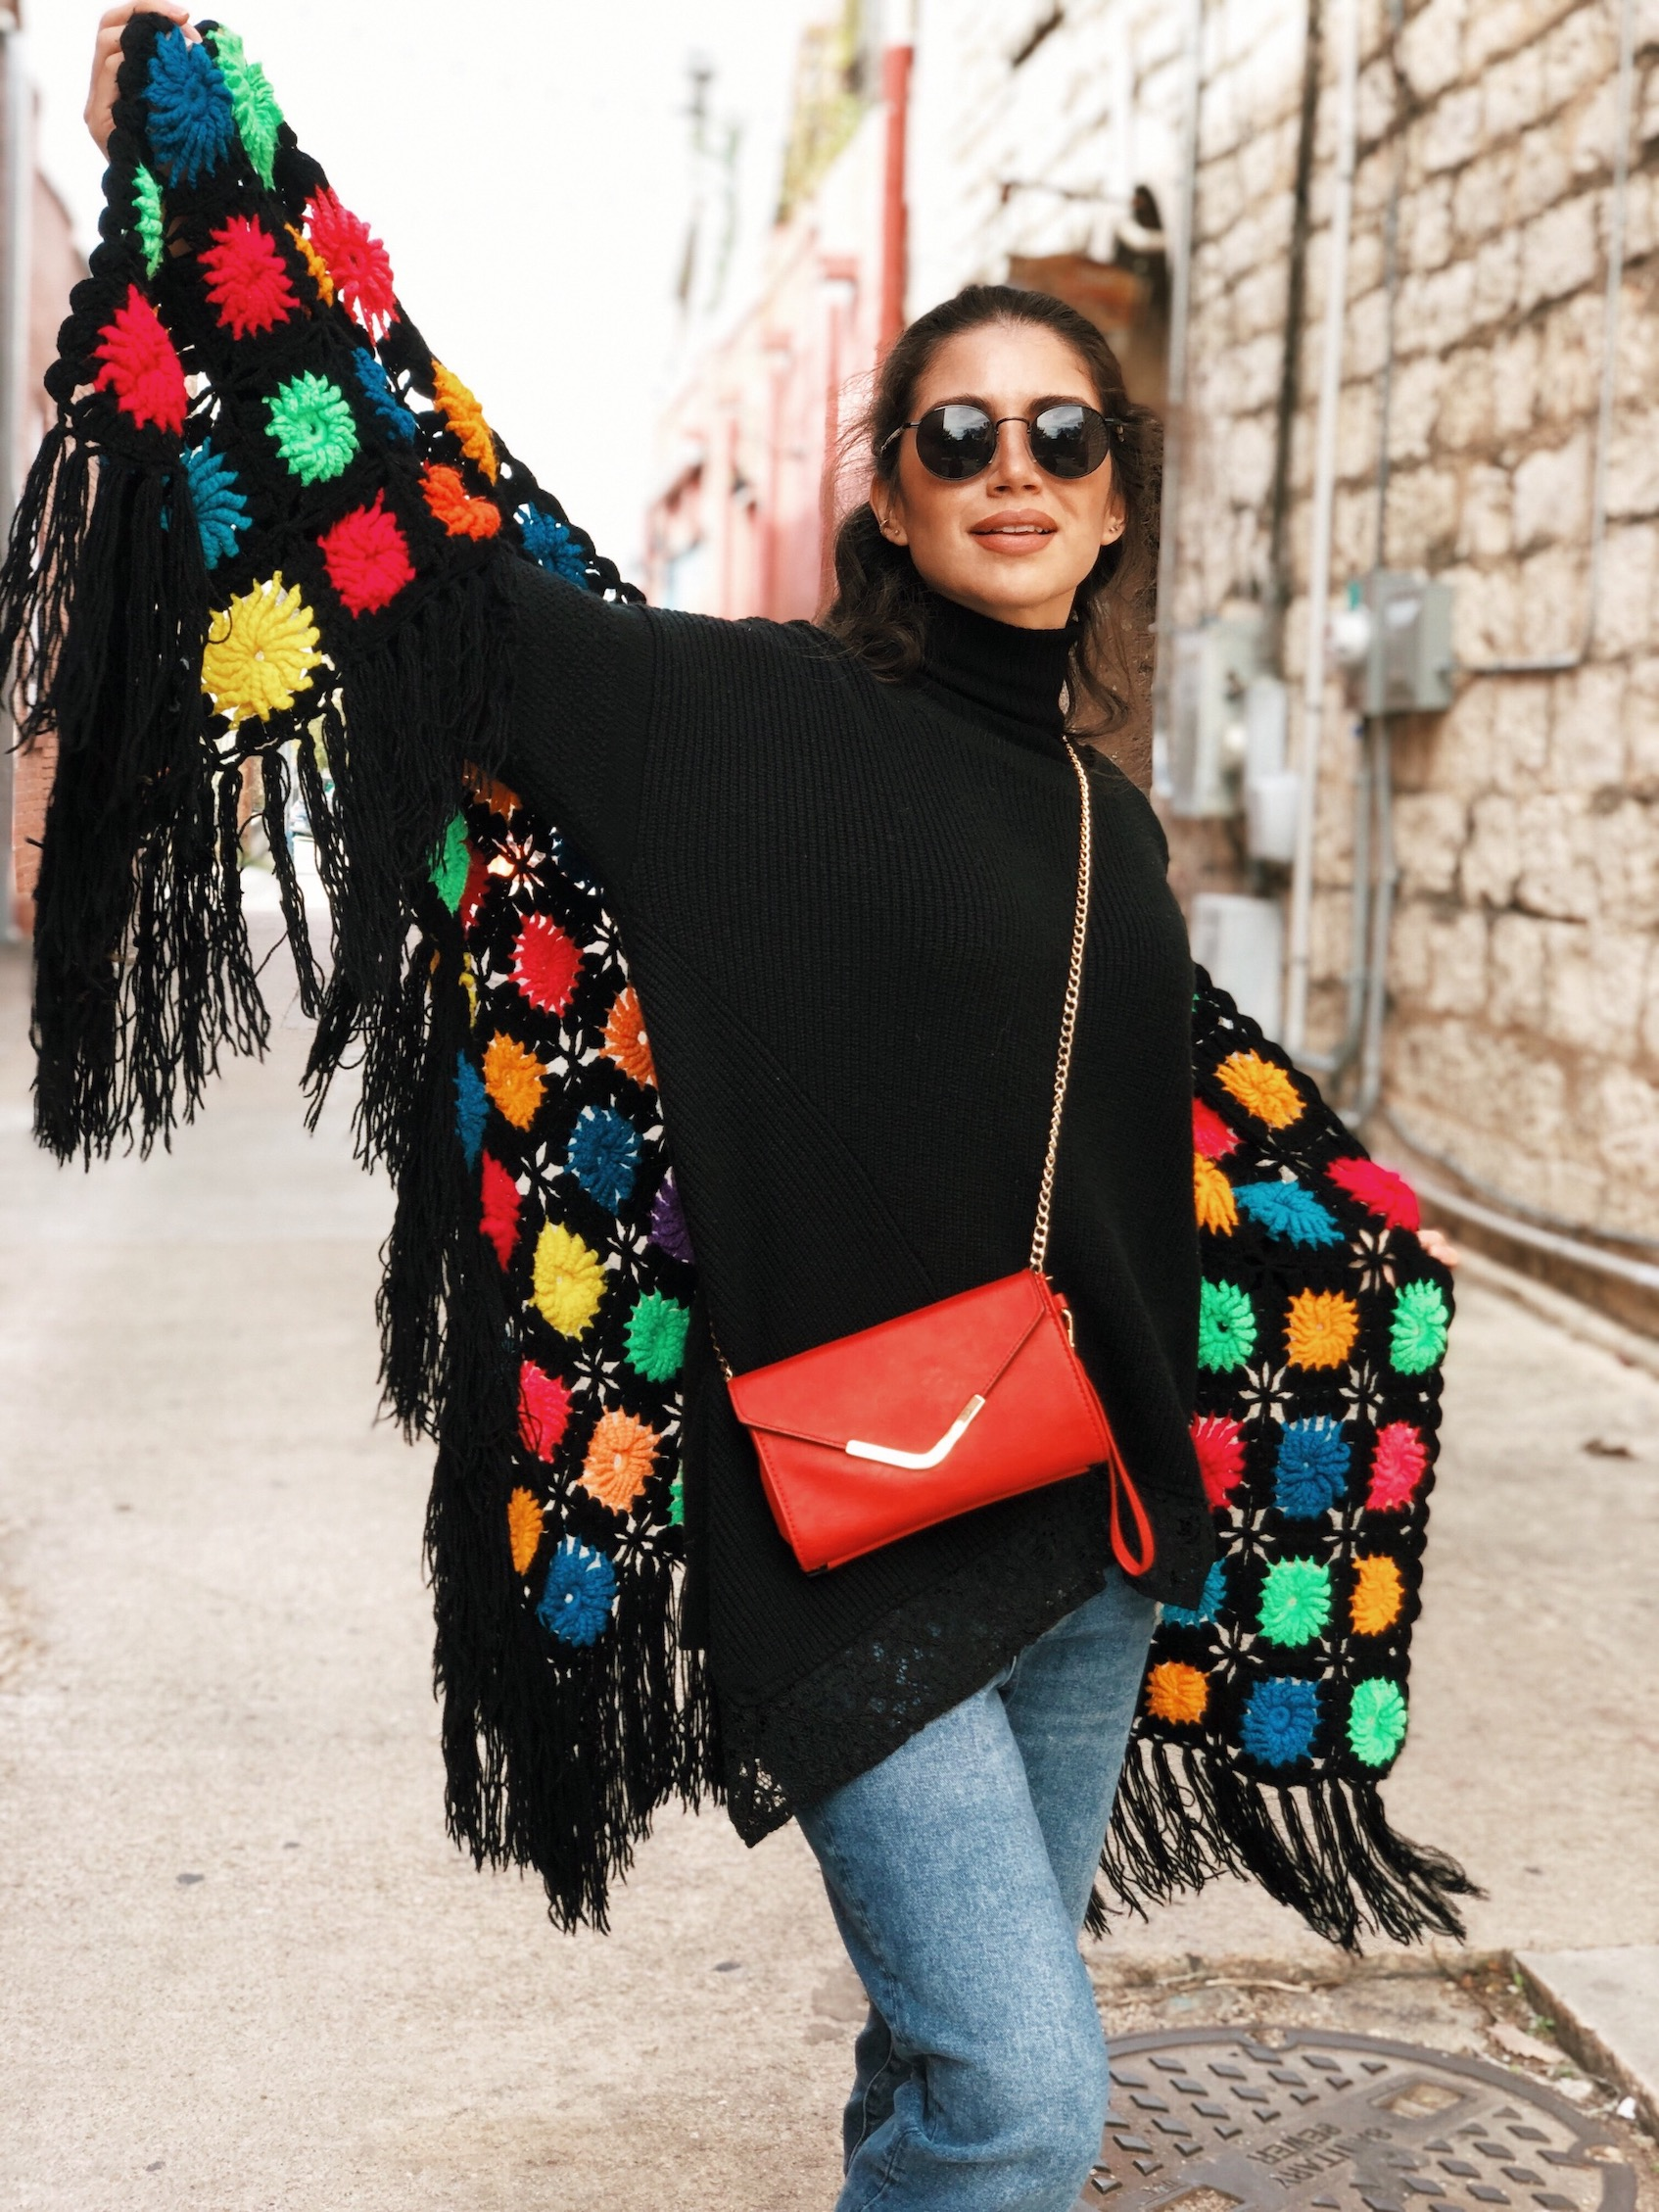 Crochet shawl with sweater - A Week Of Cruelty-Free Outfits & Vegan Beauty With Jessica Salazar From All There August on The Good Trade